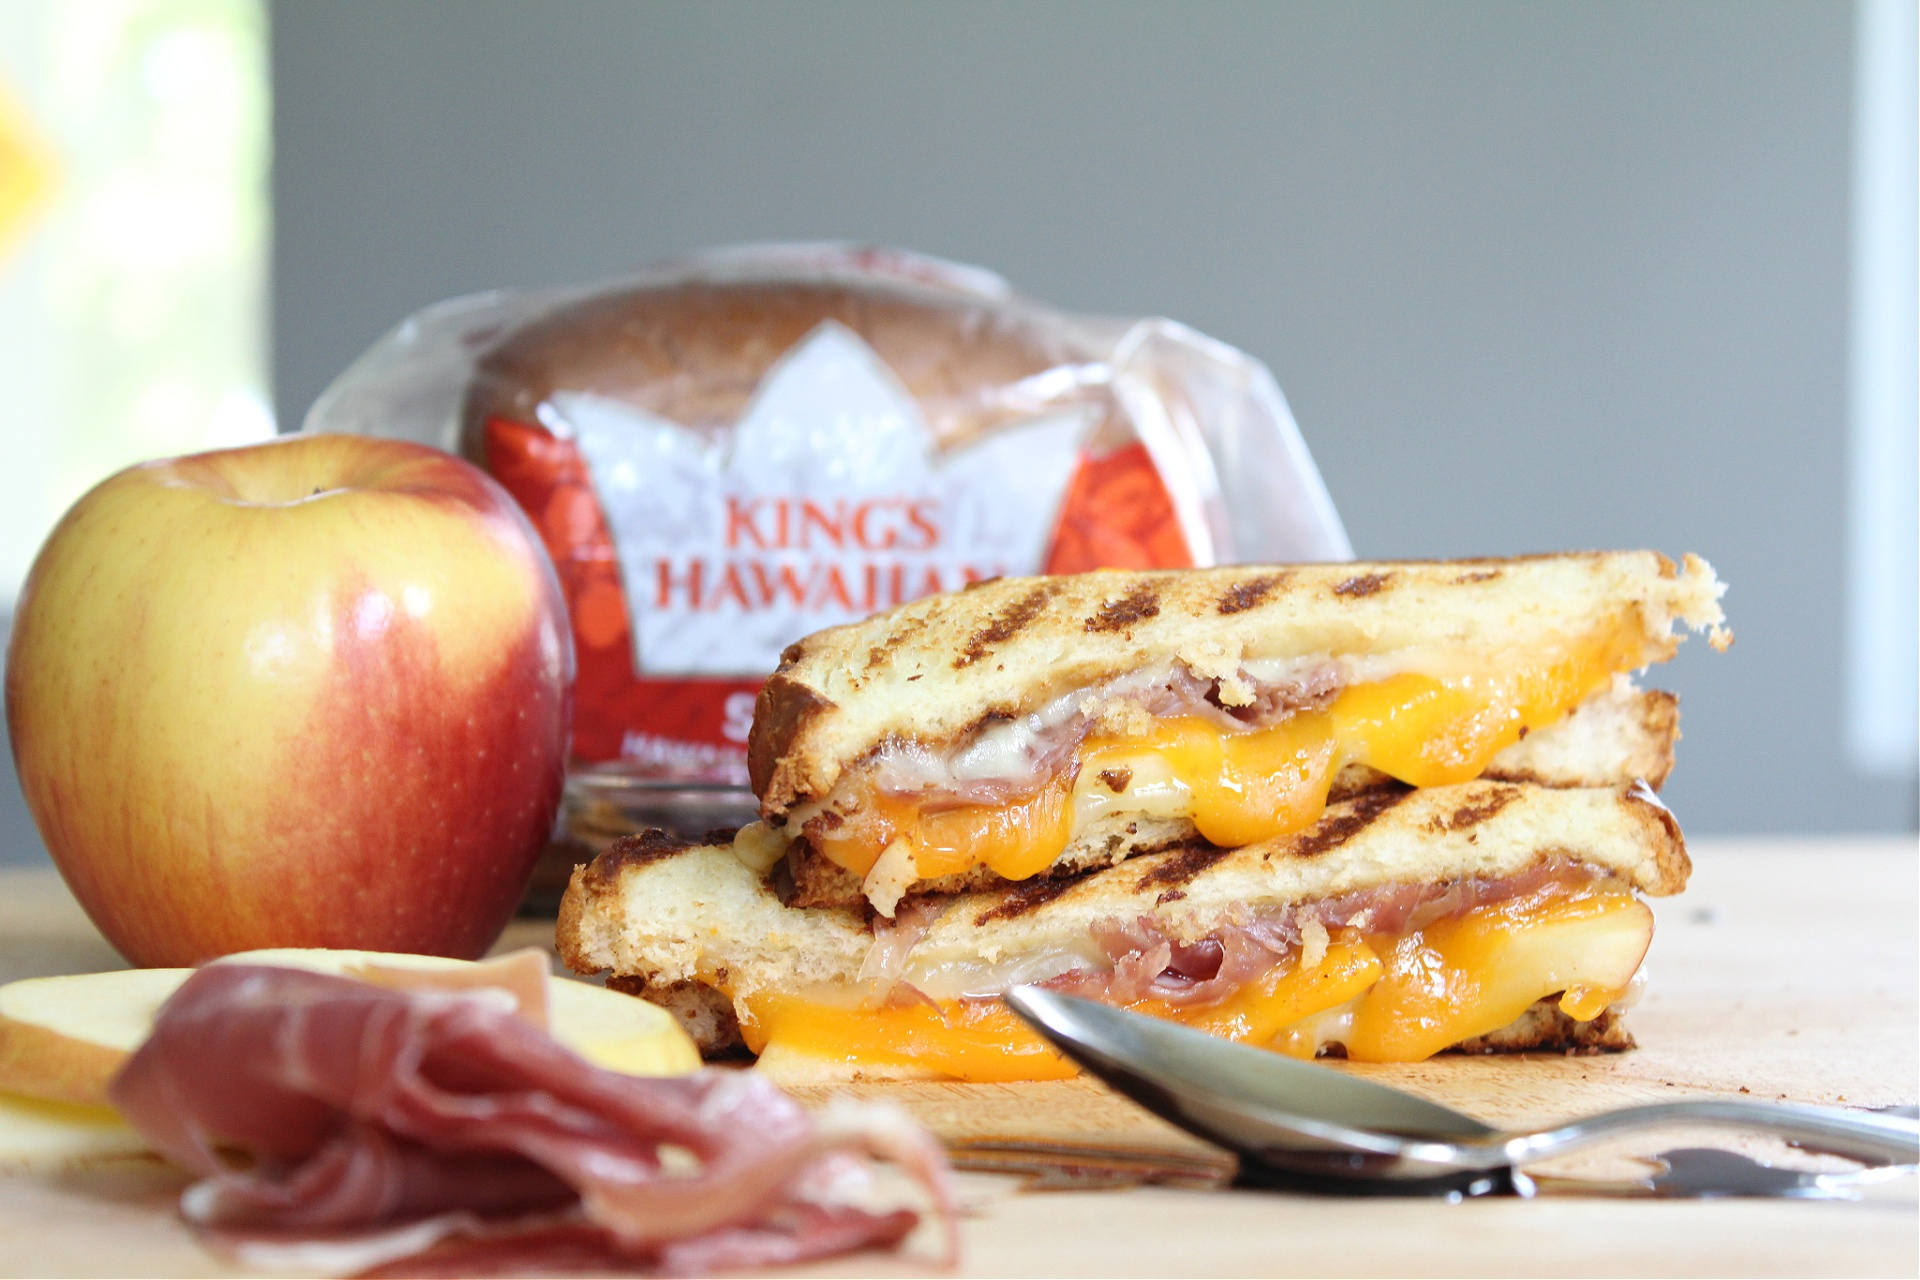 Tasty Prosciutto and Apple Grilled Cheese